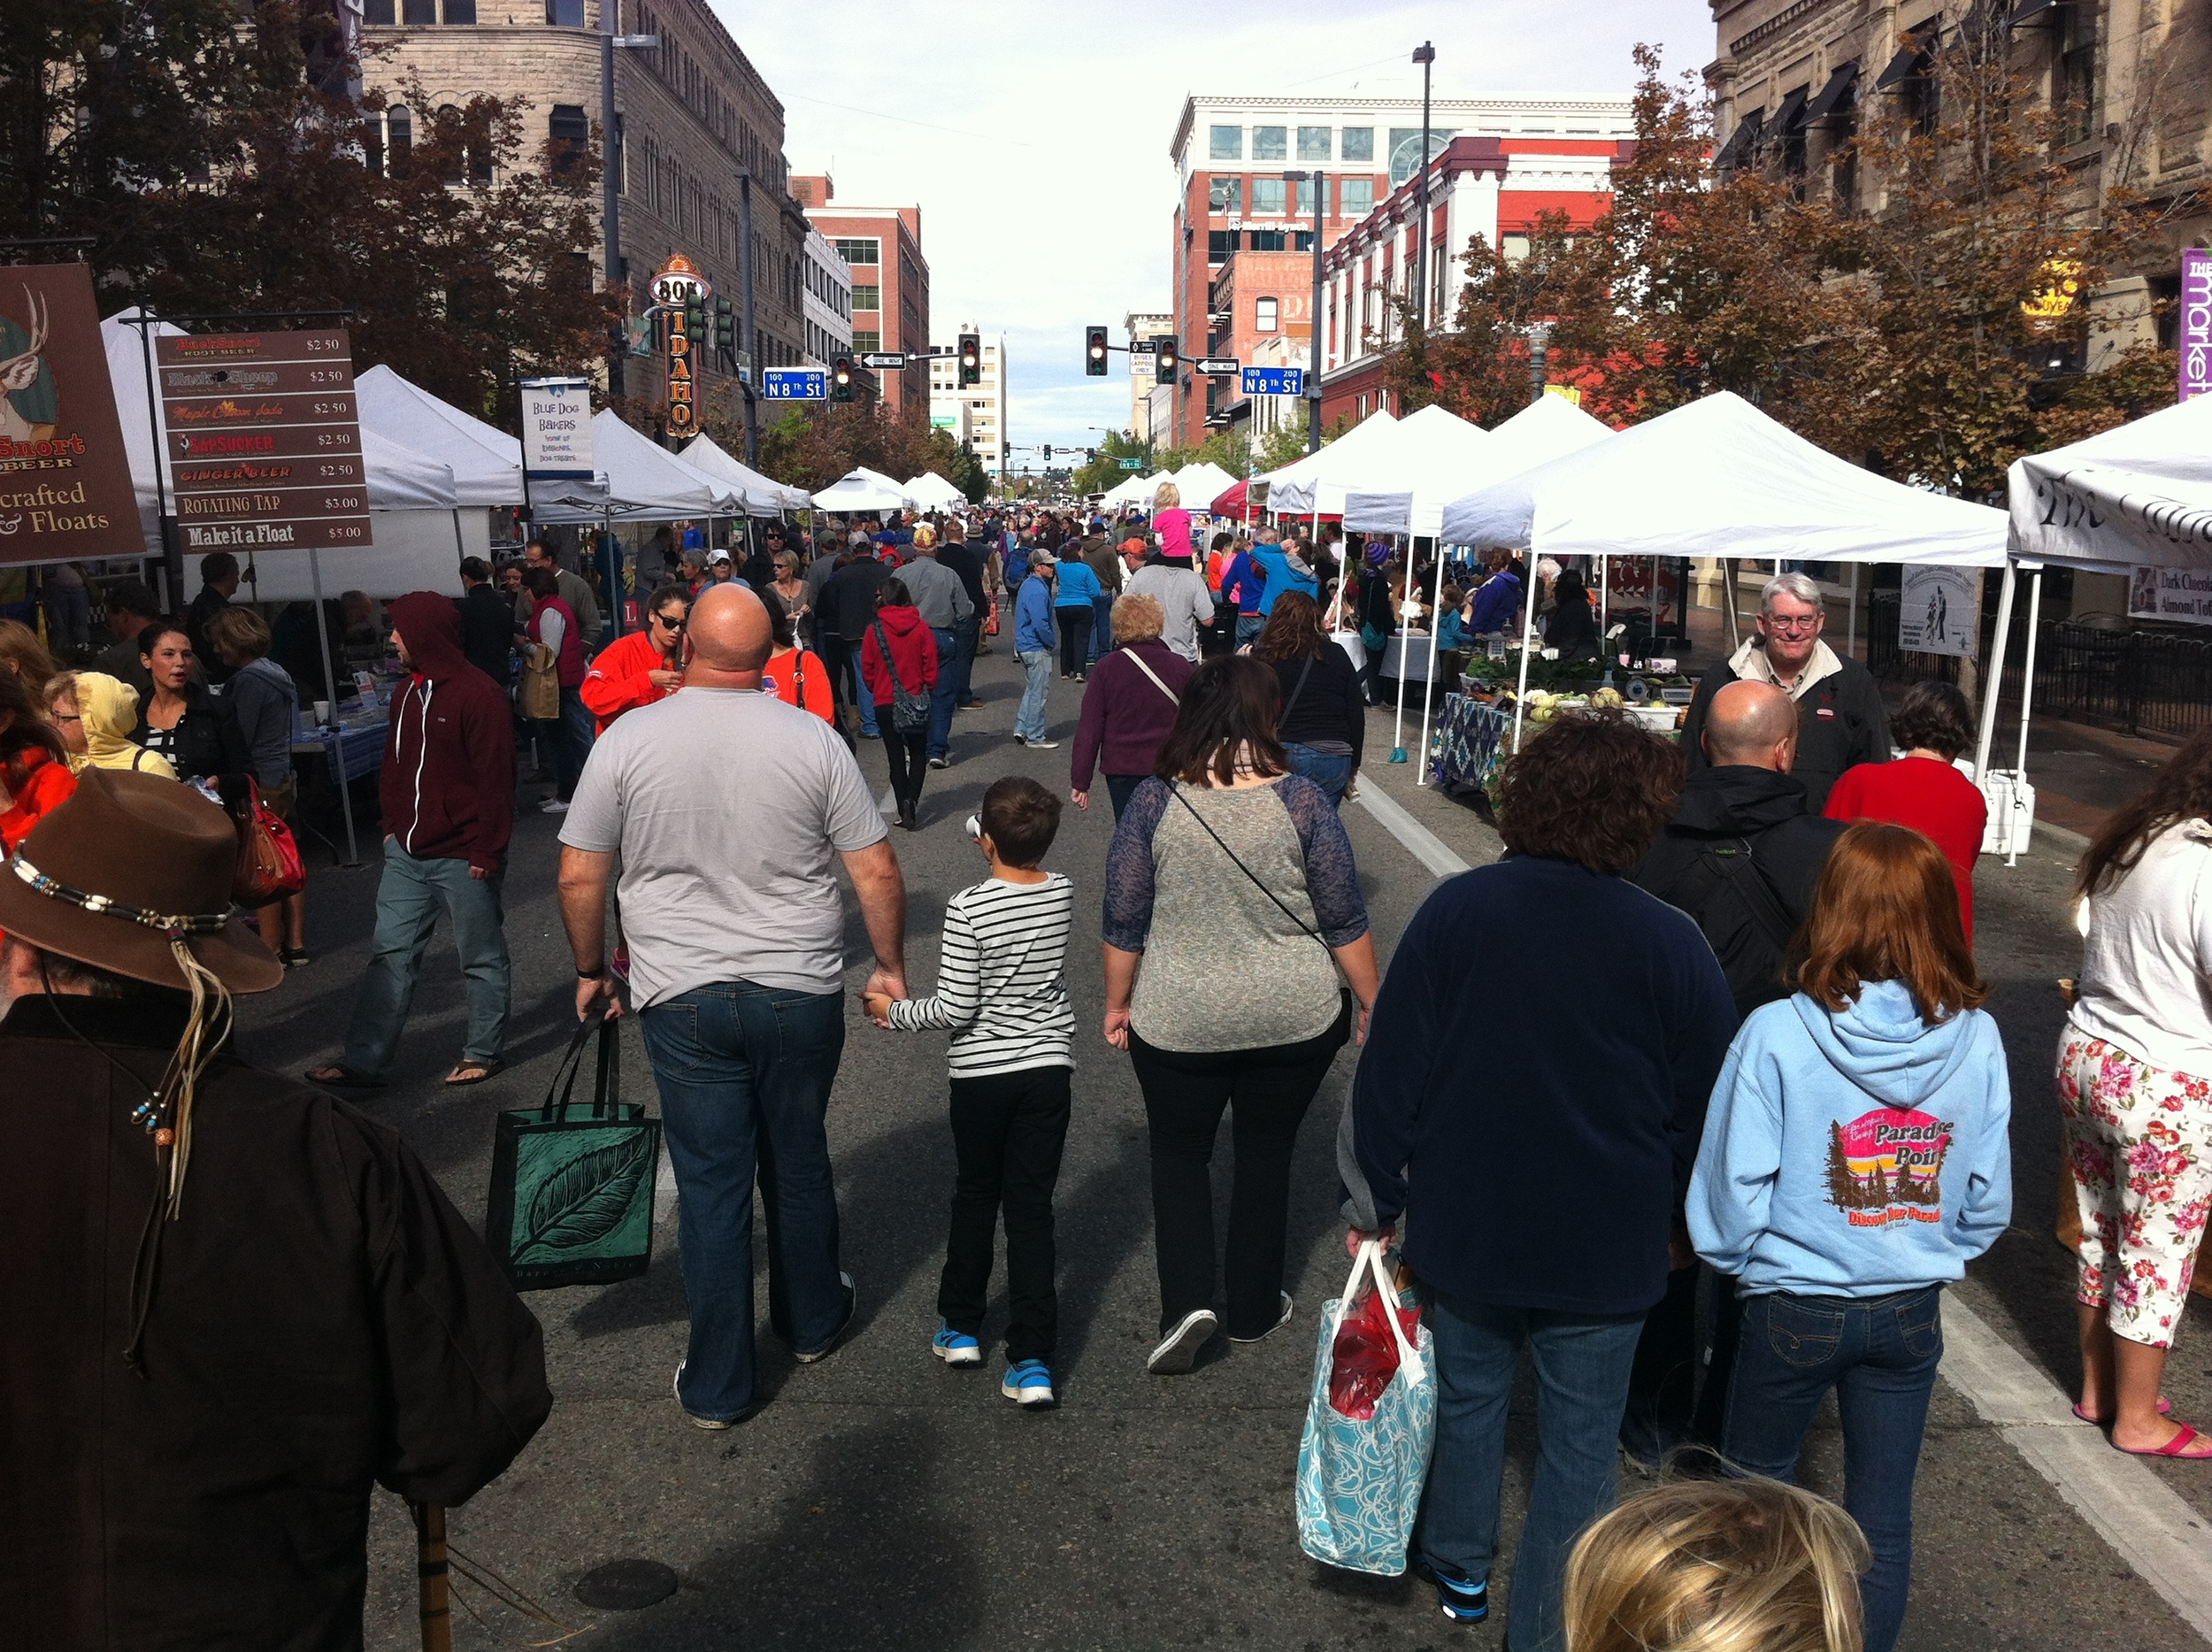 Downtown Boise's Farmers' Market attracts thousands of shoppers and people watchers.